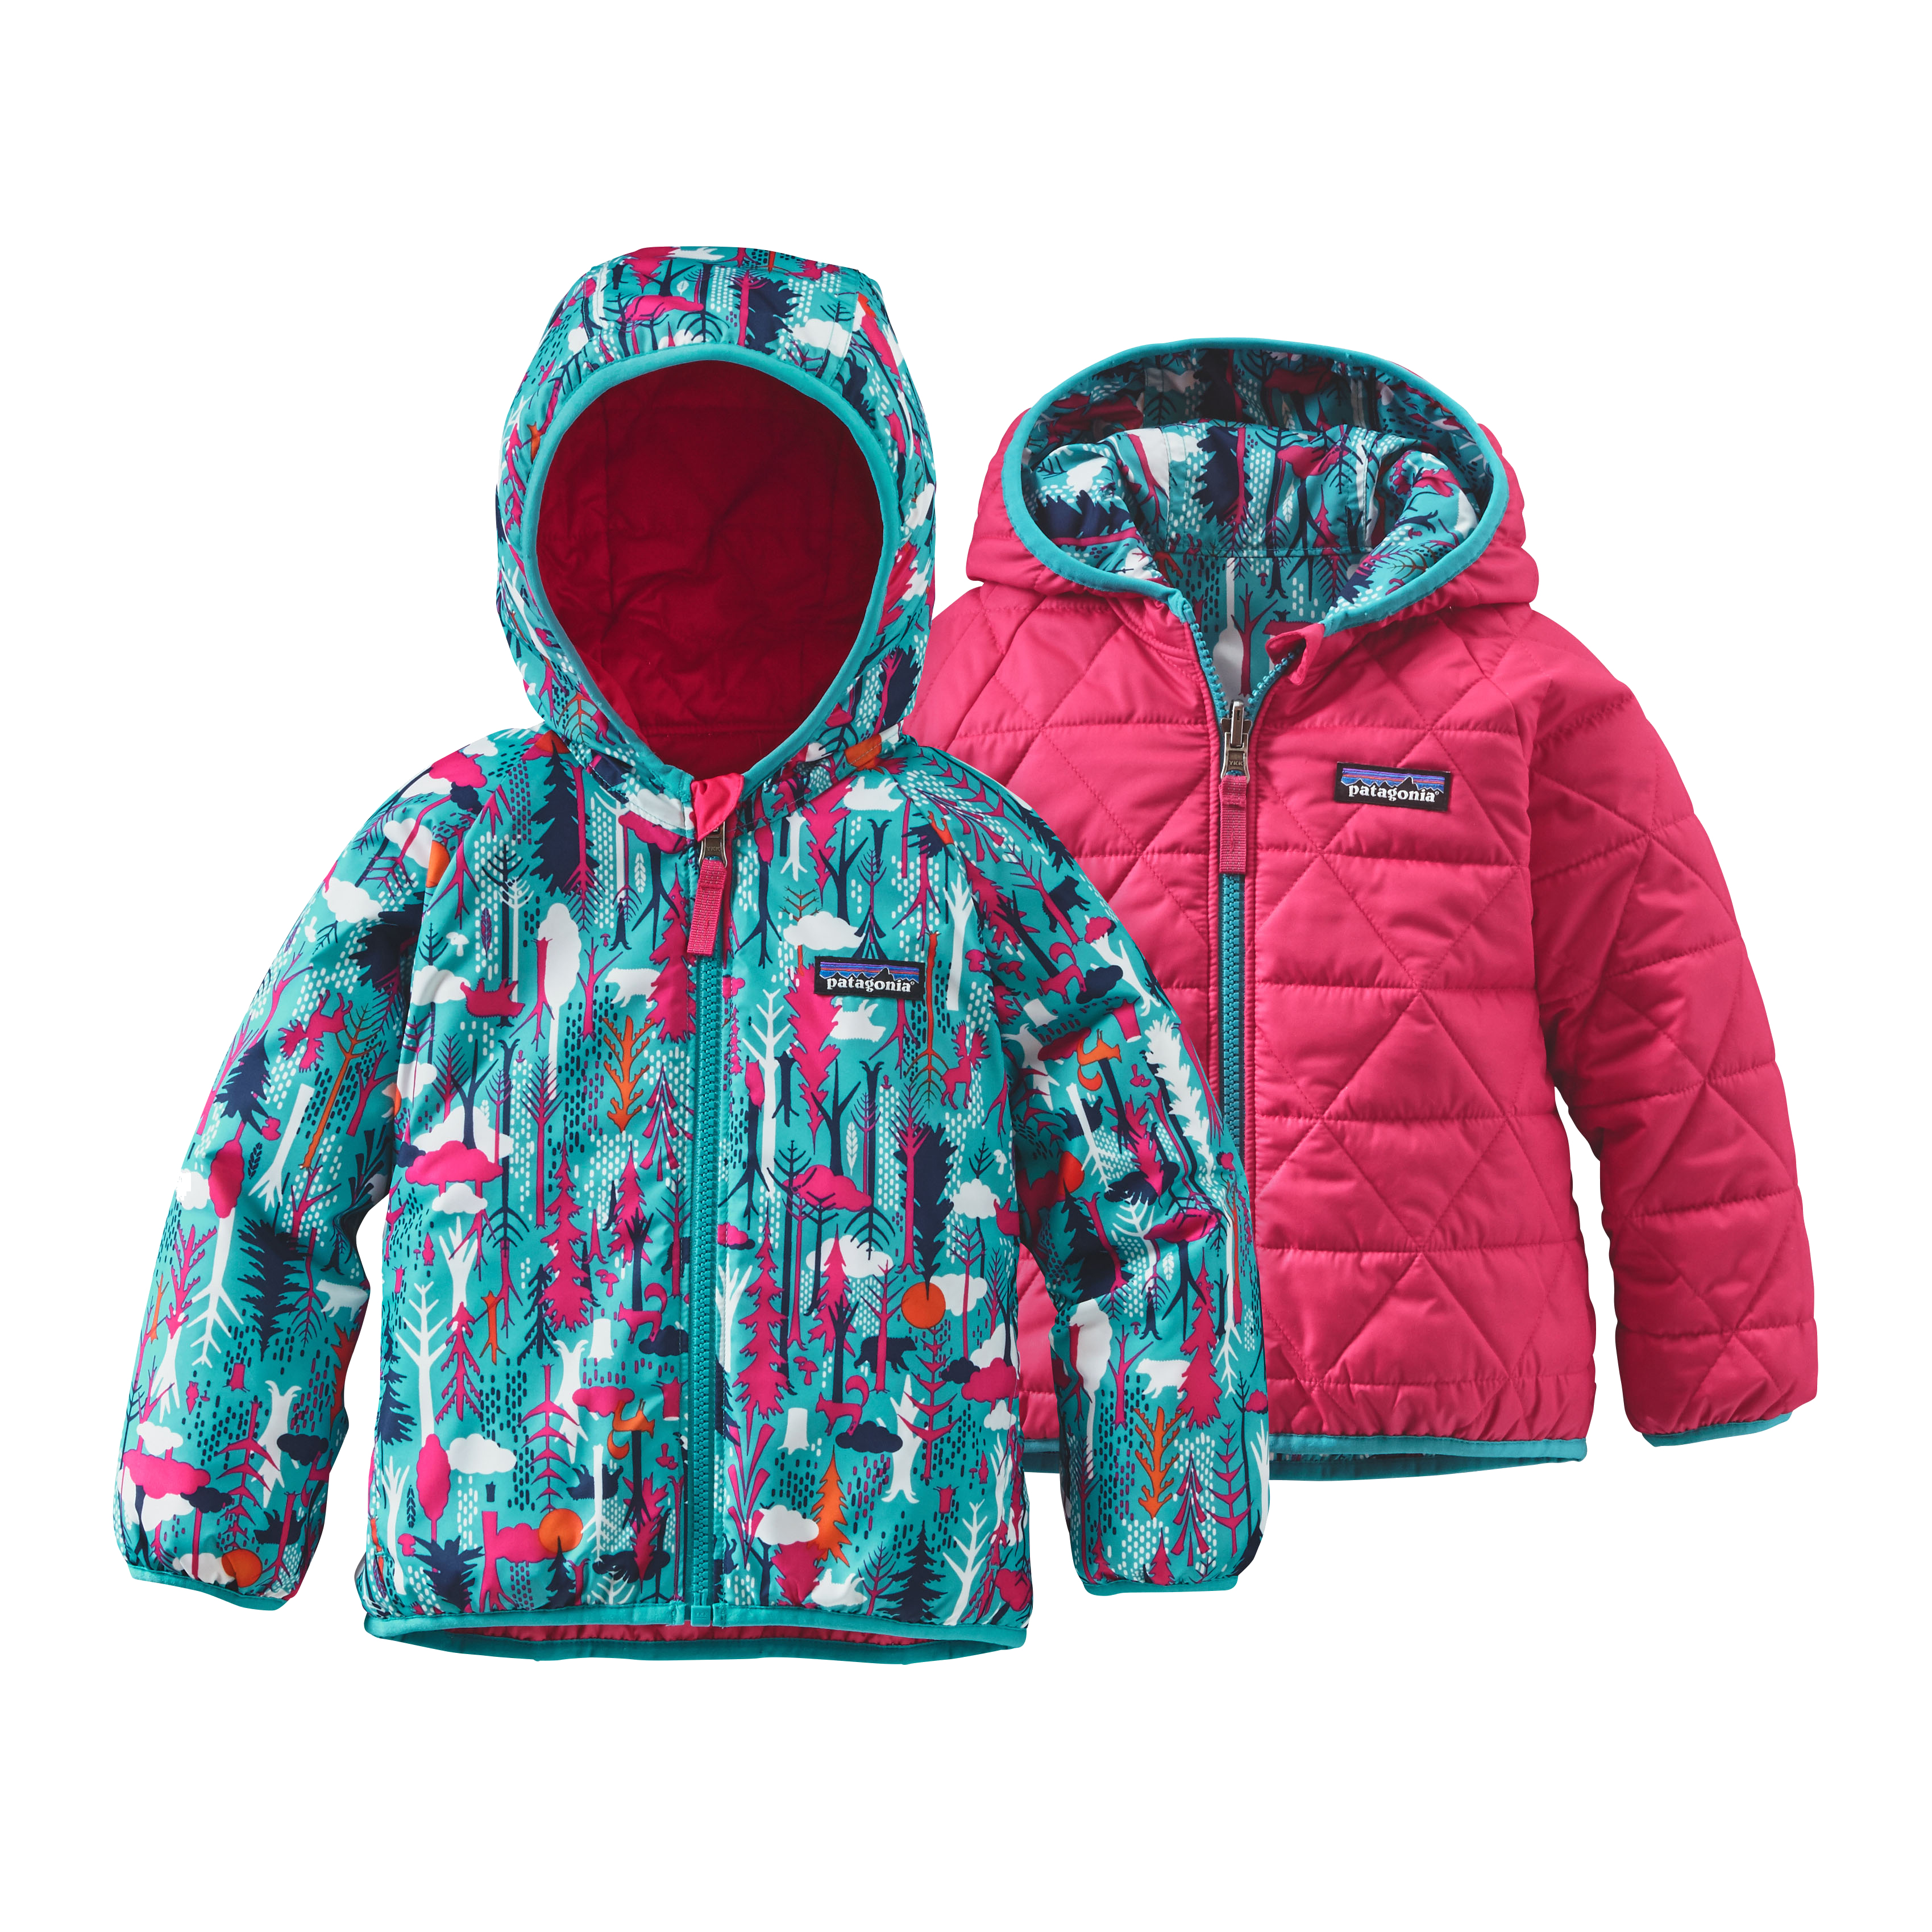 99becd2f9 Patagonia Reversible Puff-Ball Jacket 2 - Infants to Children | MEC